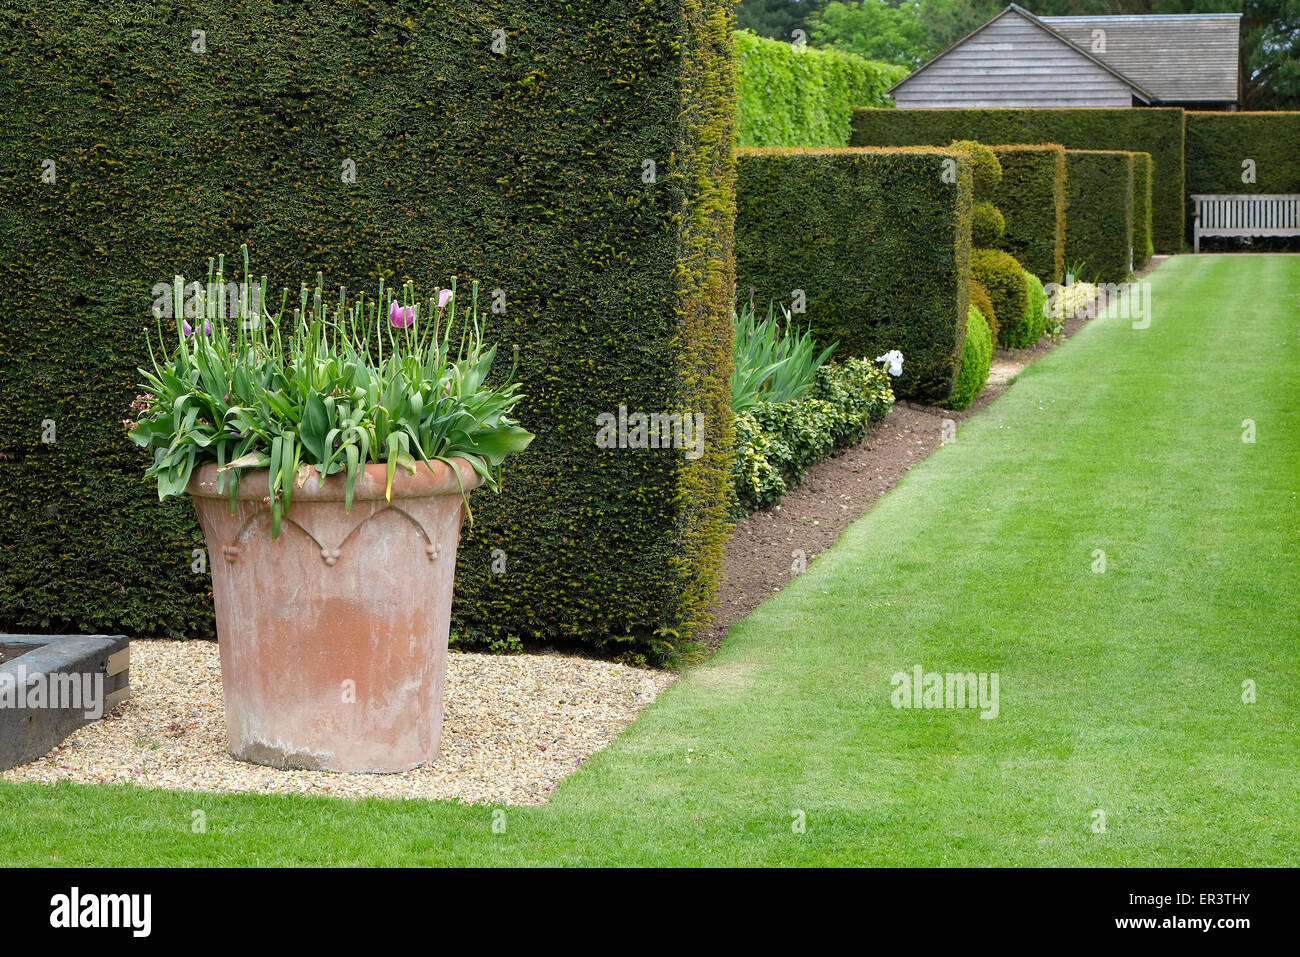 clipped hedges stockfotos clipped hedges bilder alamy. Black Bedroom Furniture Sets. Home Design Ideas